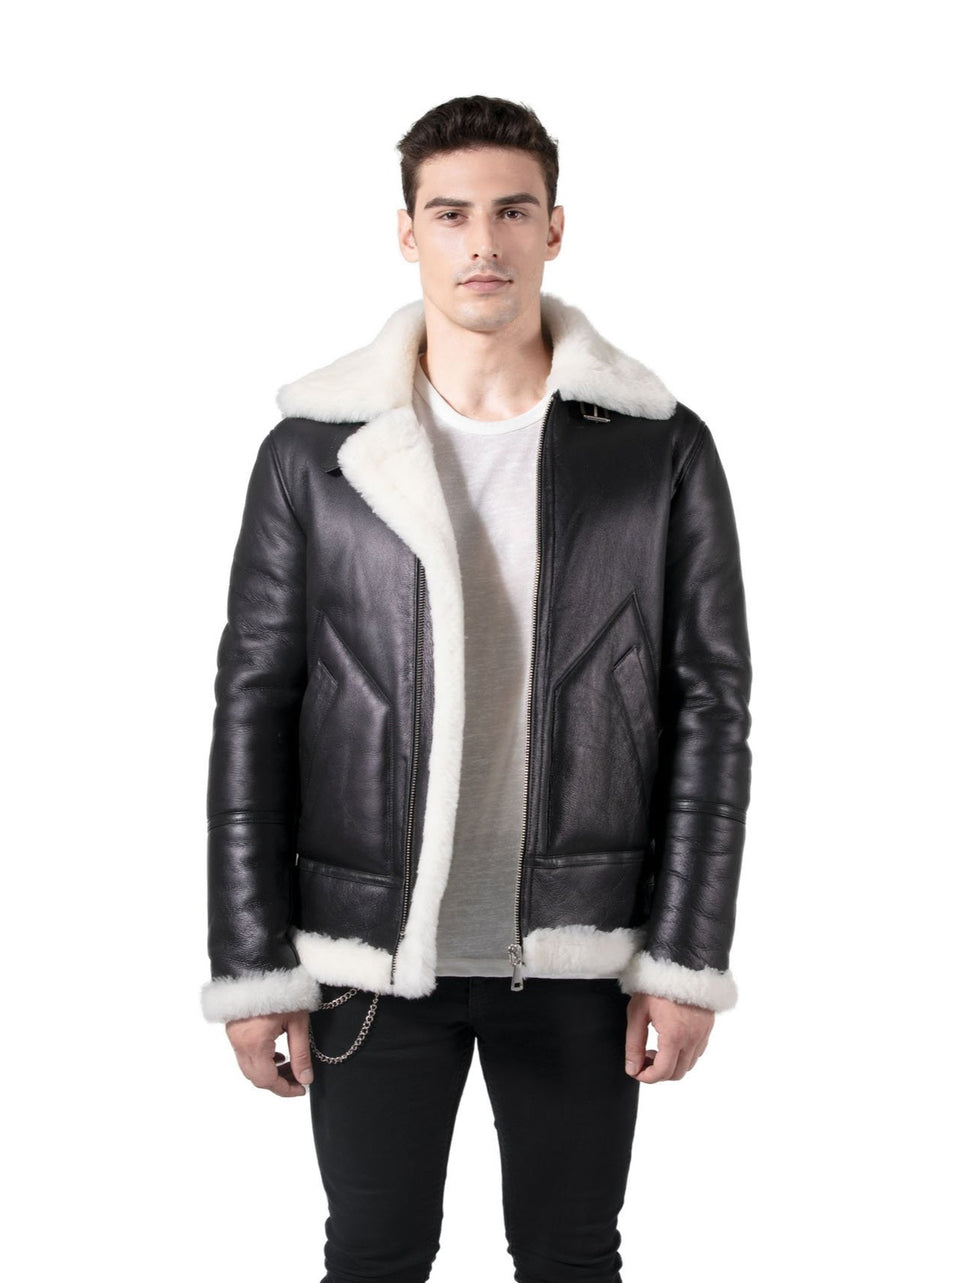 Vinly - Men's Premium Shearling Jacket - Zipper Jacket Fashion 2020